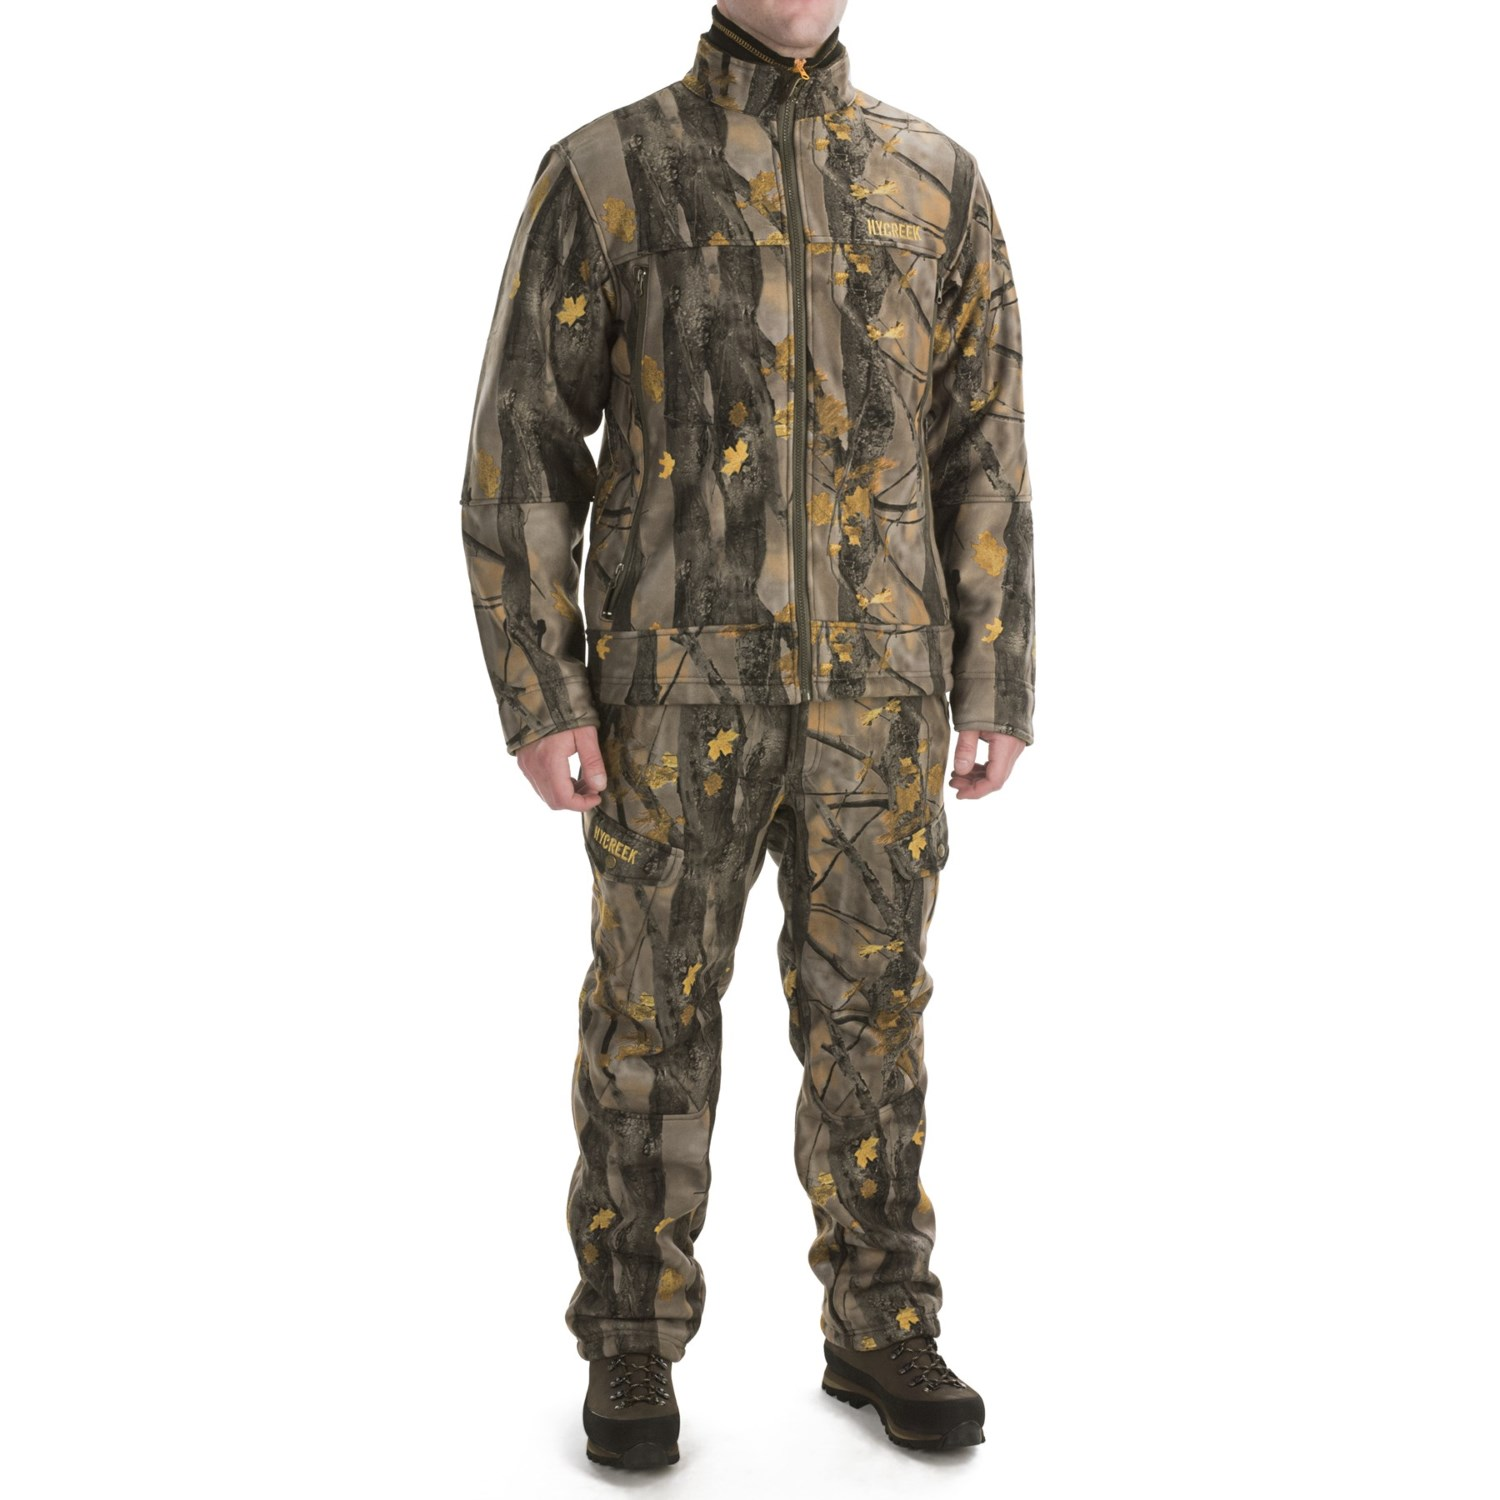 hycreek stealth ii bow hunter s package   6 piece for men